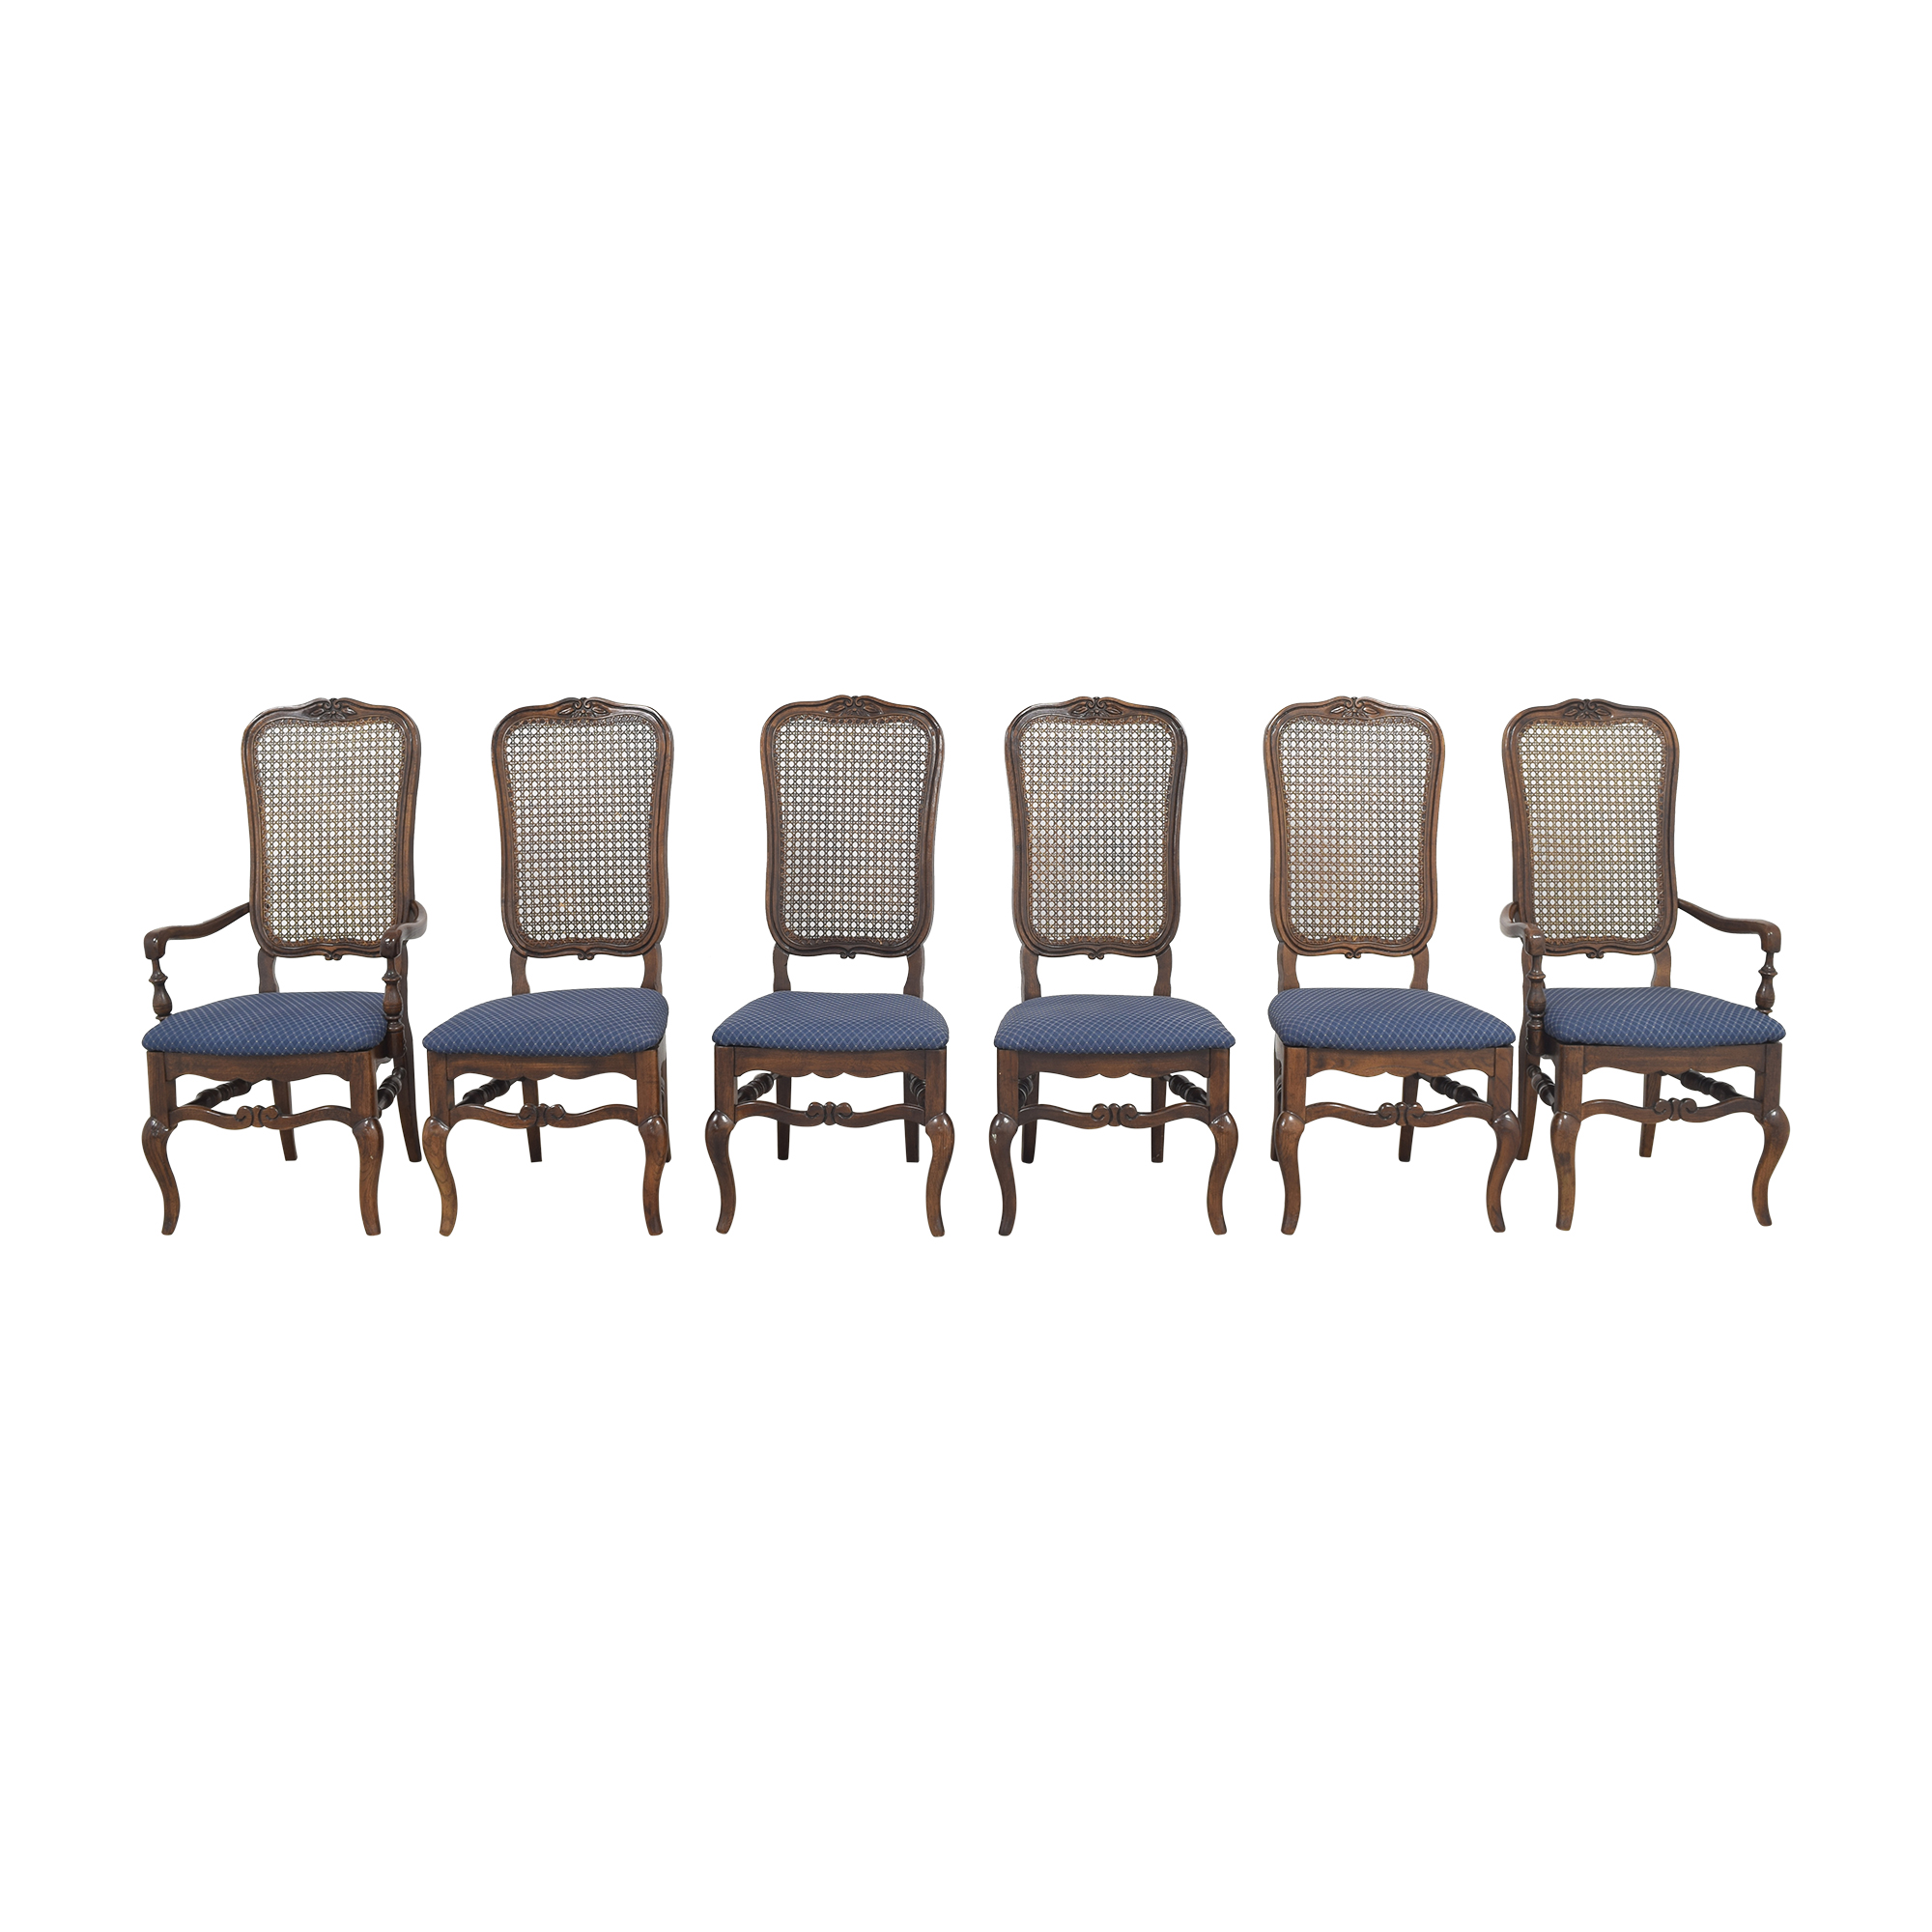 Thomasville Thomasville Upholstered Dining Chairs discount